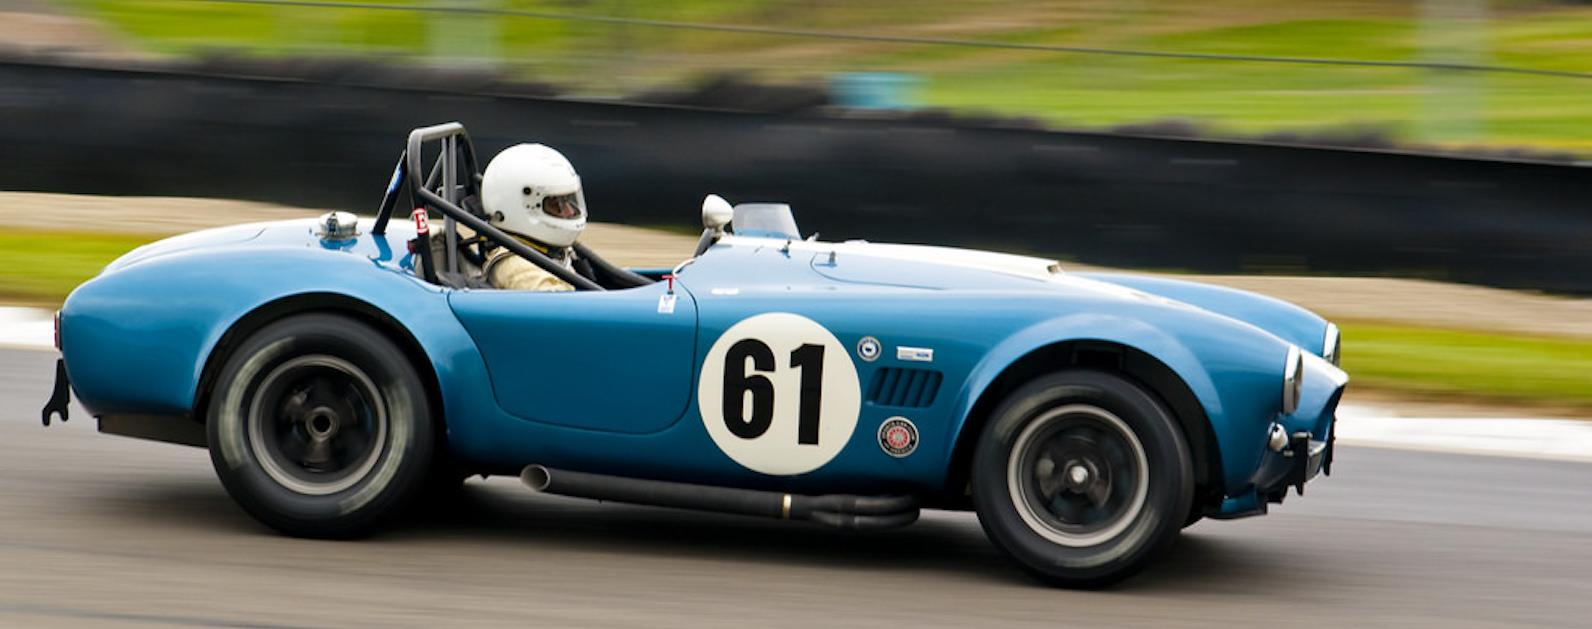 Ex-racer sues DVLA for ruling '1964' Cobra was built in 2002